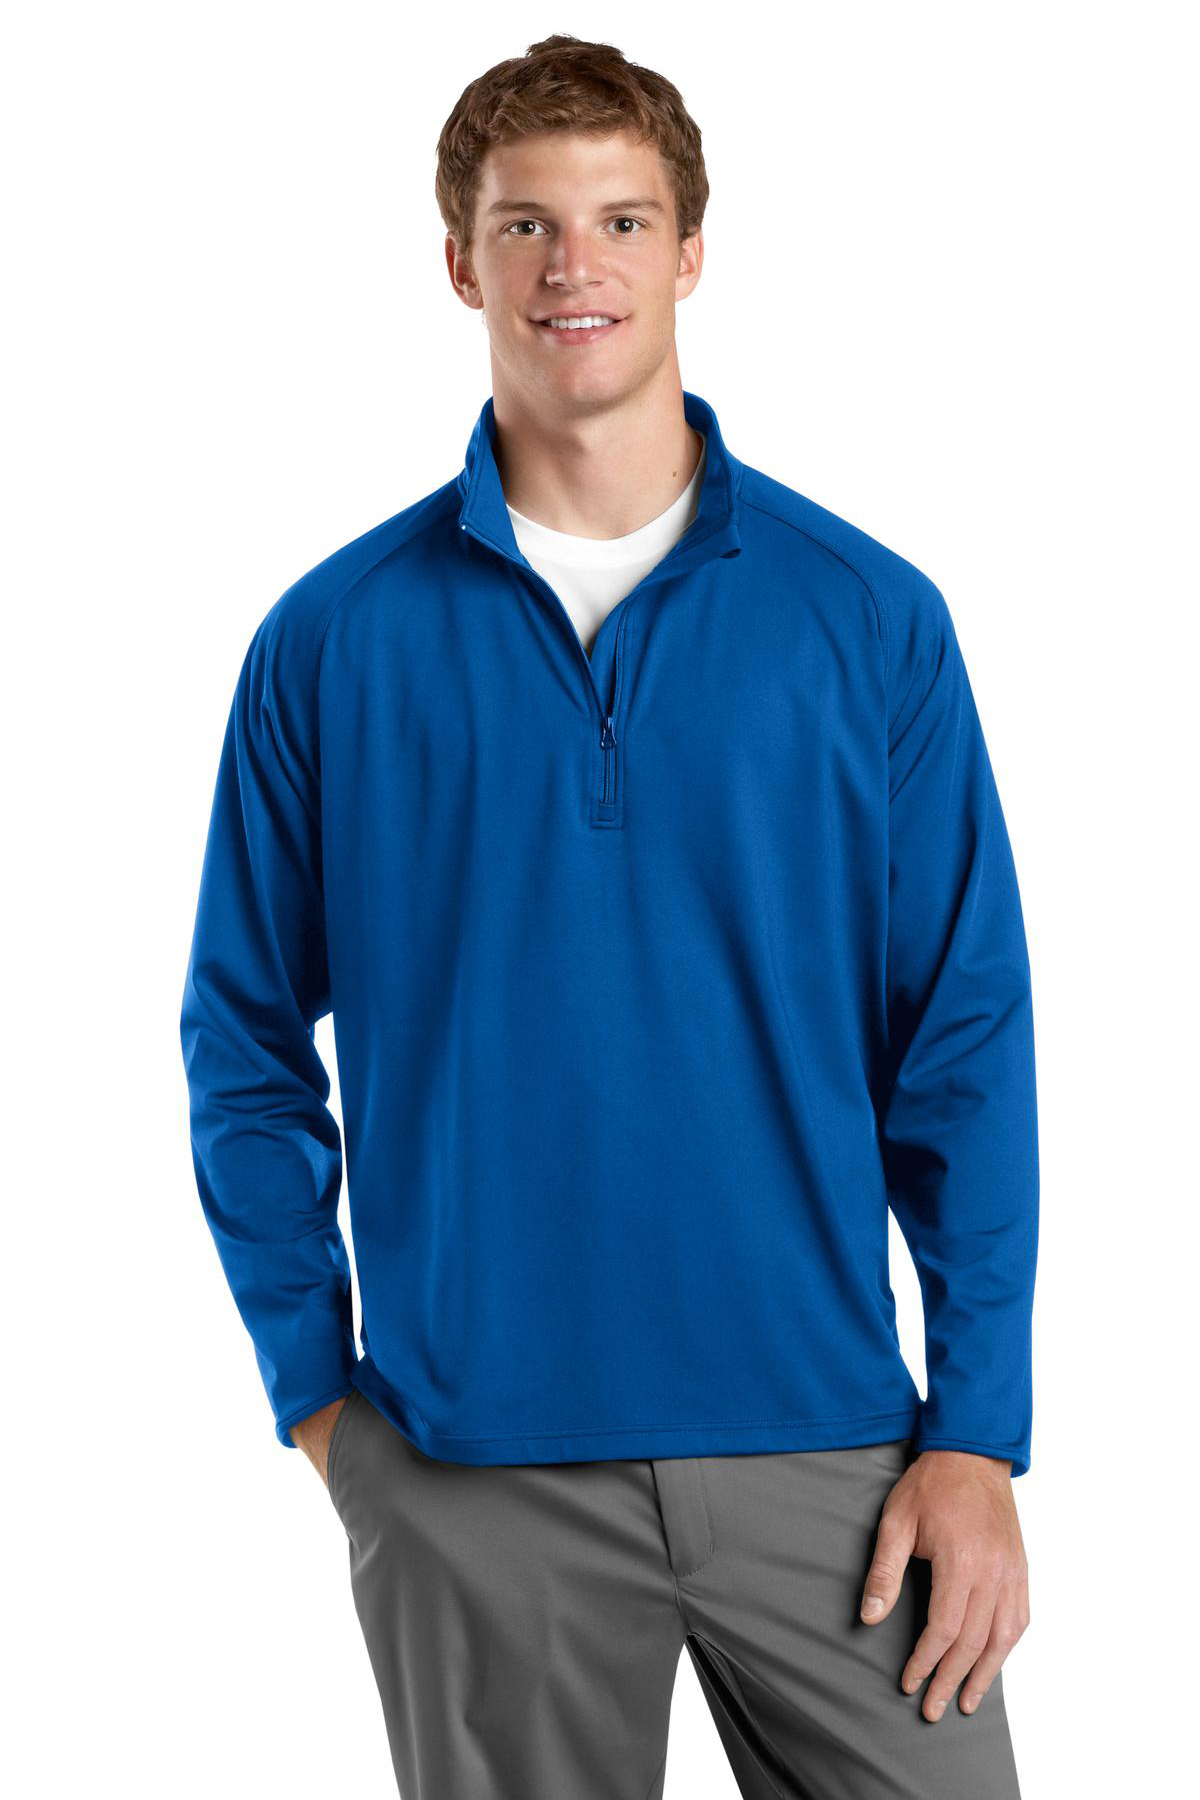 Sweatshirts-Fleece-Half-Quarter-Zip-11